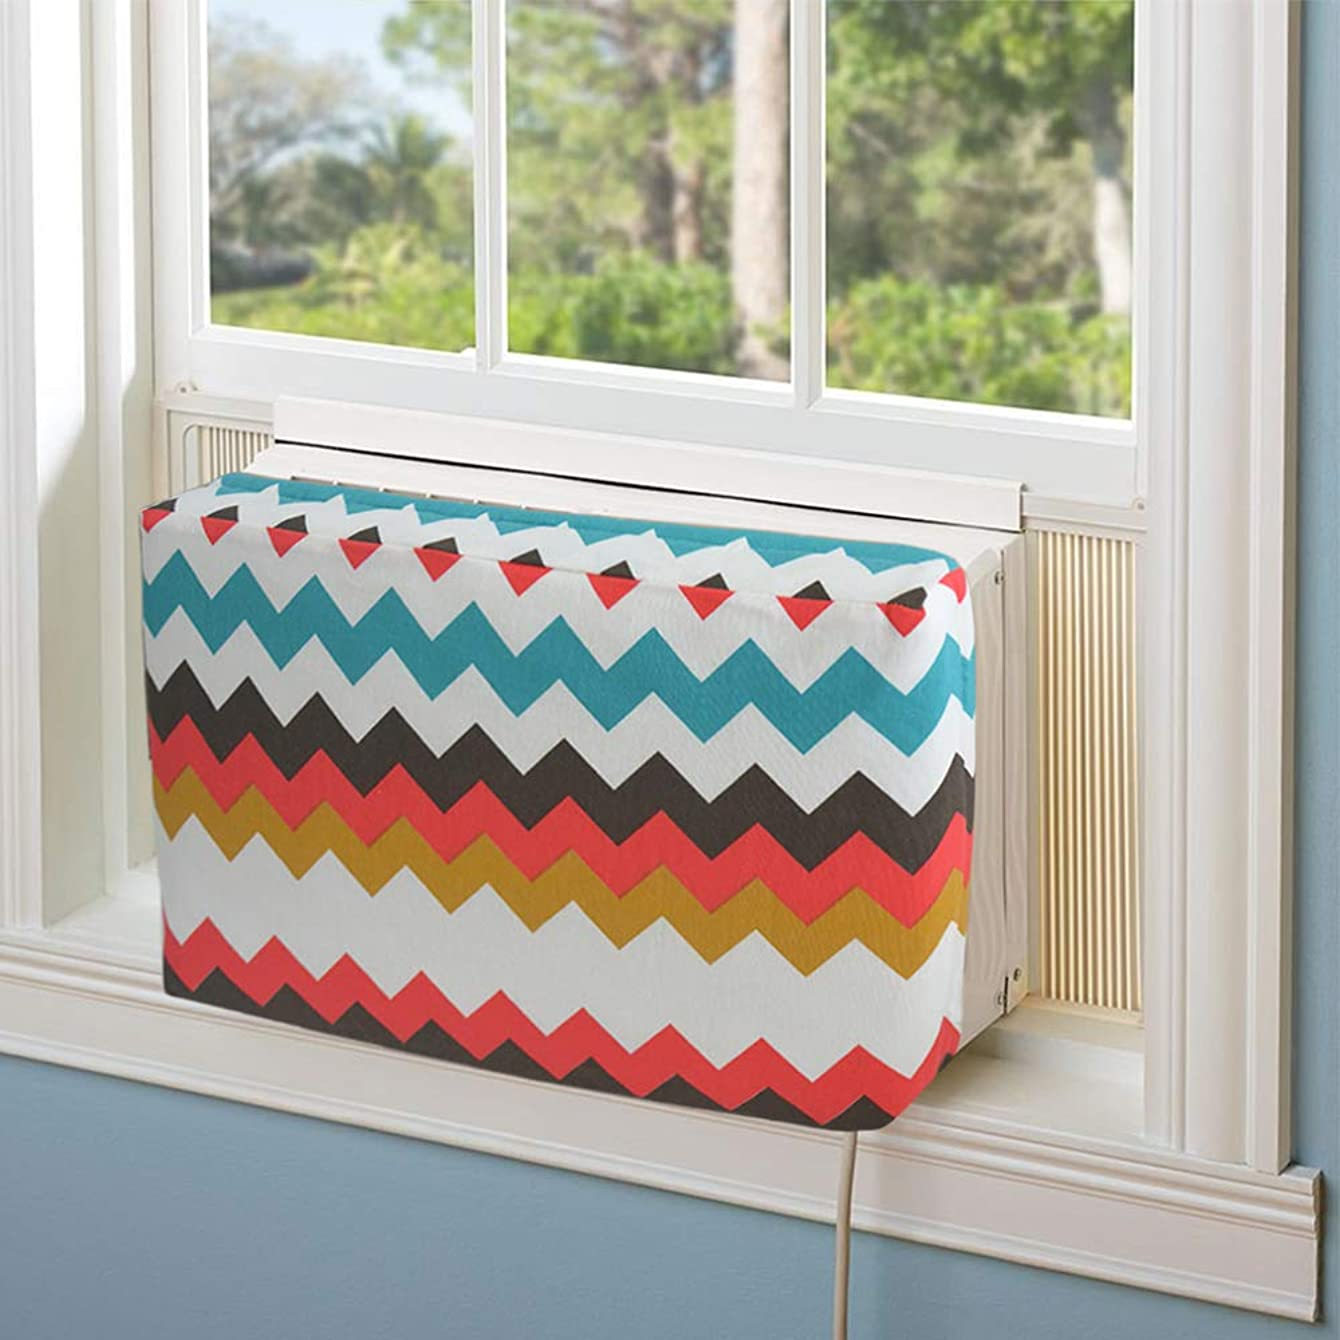 Jeacent Indoor Air Conditioner Cover Double Insulation, Colorful Wave Large